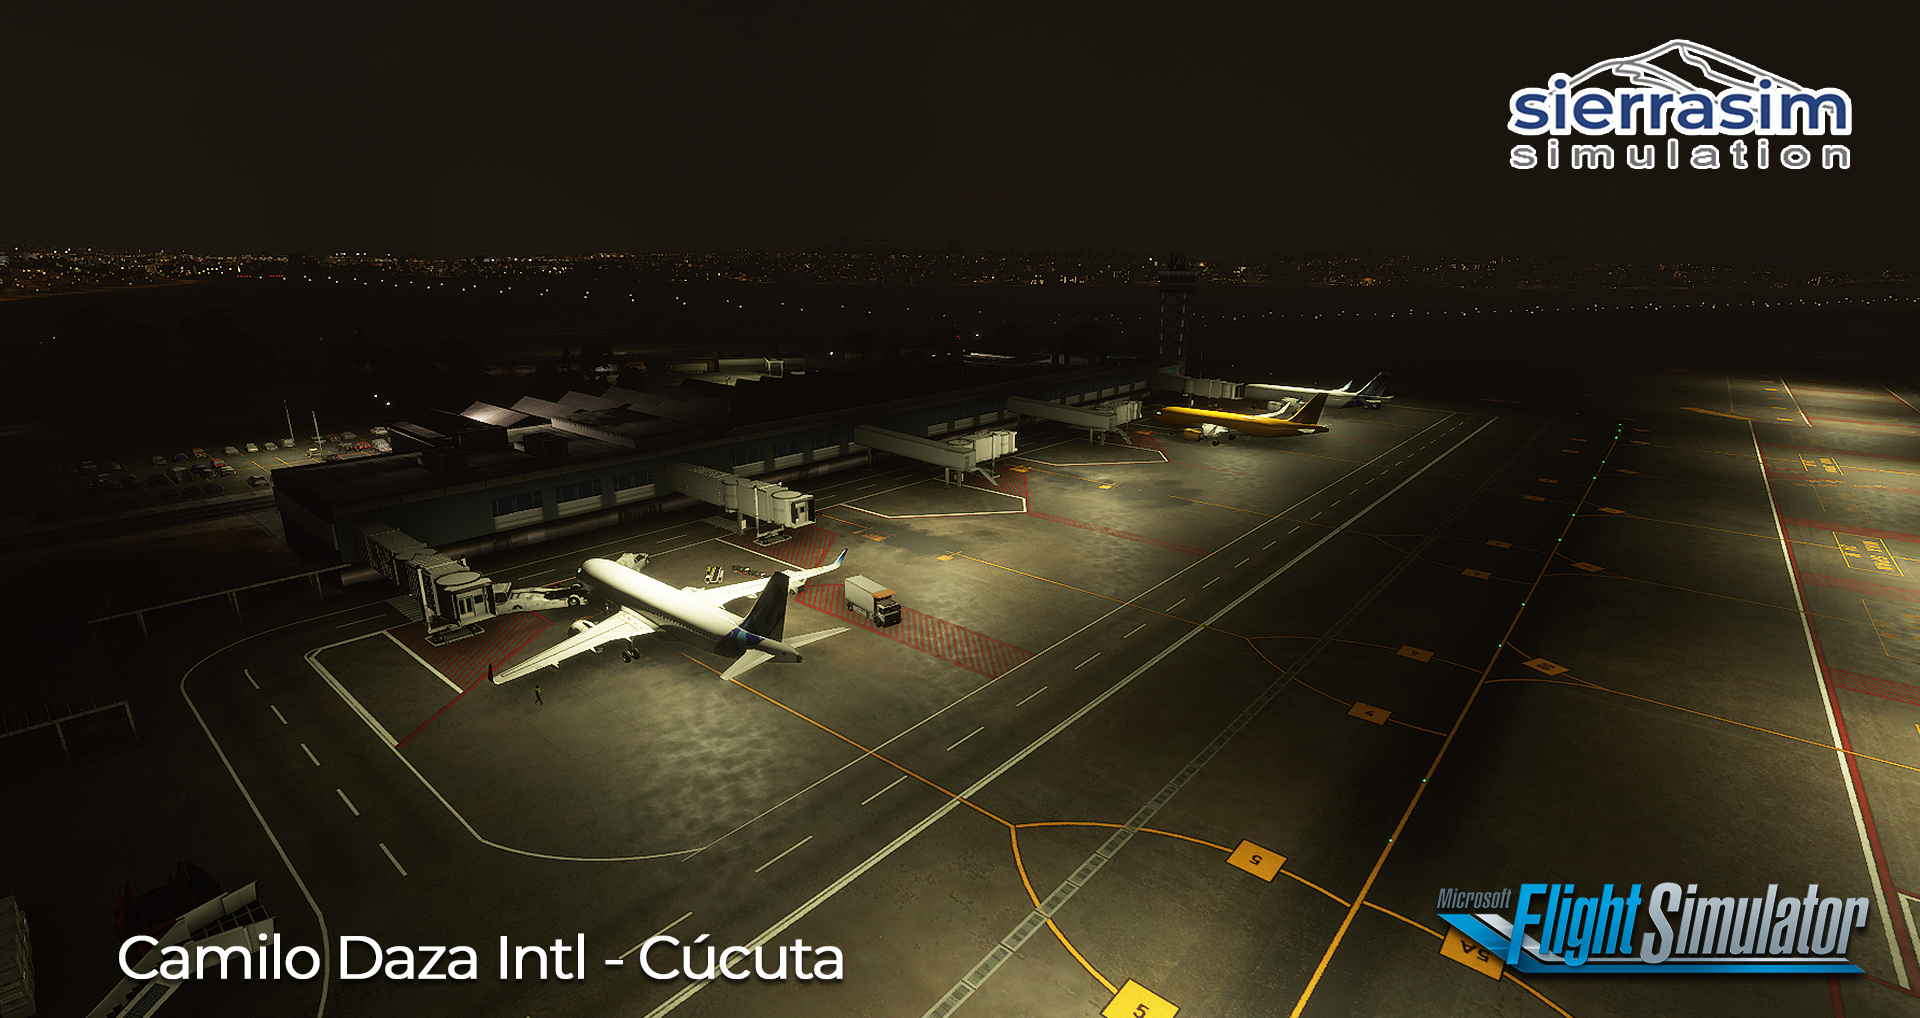 SIERRASIM SIMULATION - SKCC CAMILO DAZA INTERNATIONAL AIRPORT MSFS